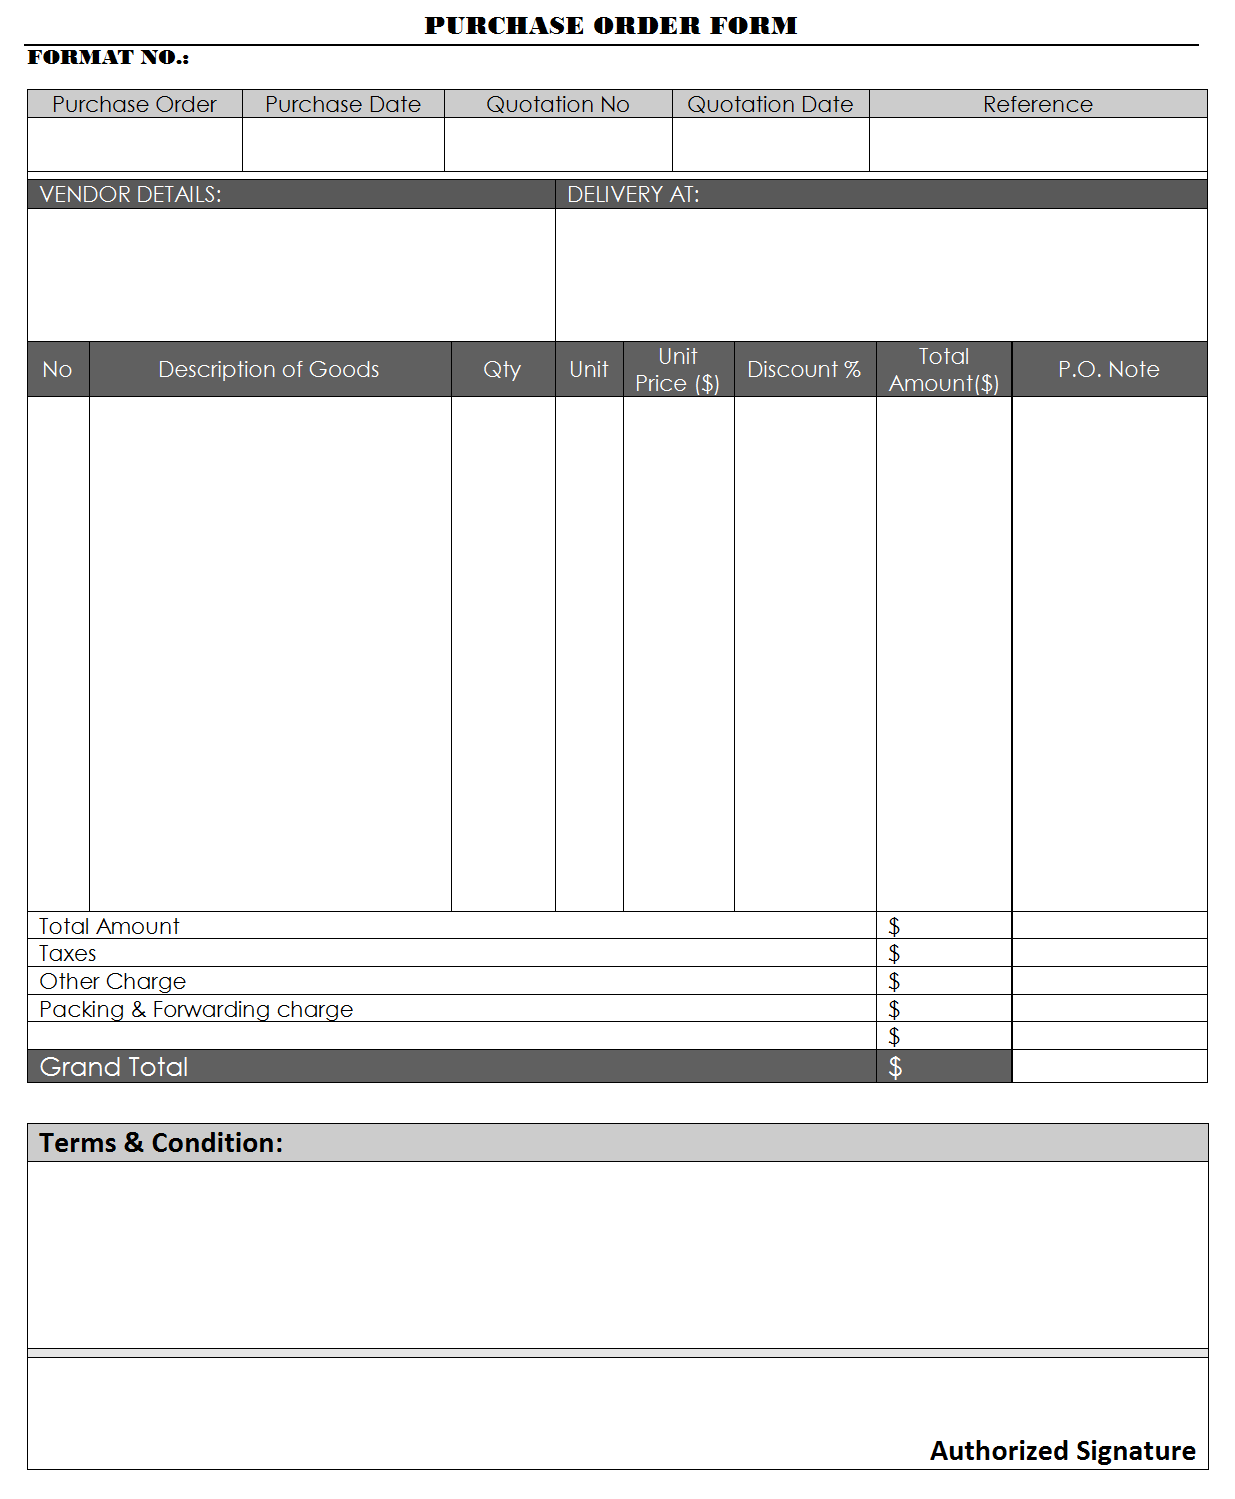 Purchase Order Form Format Format PG 1 ...  Local Purchase Order Format